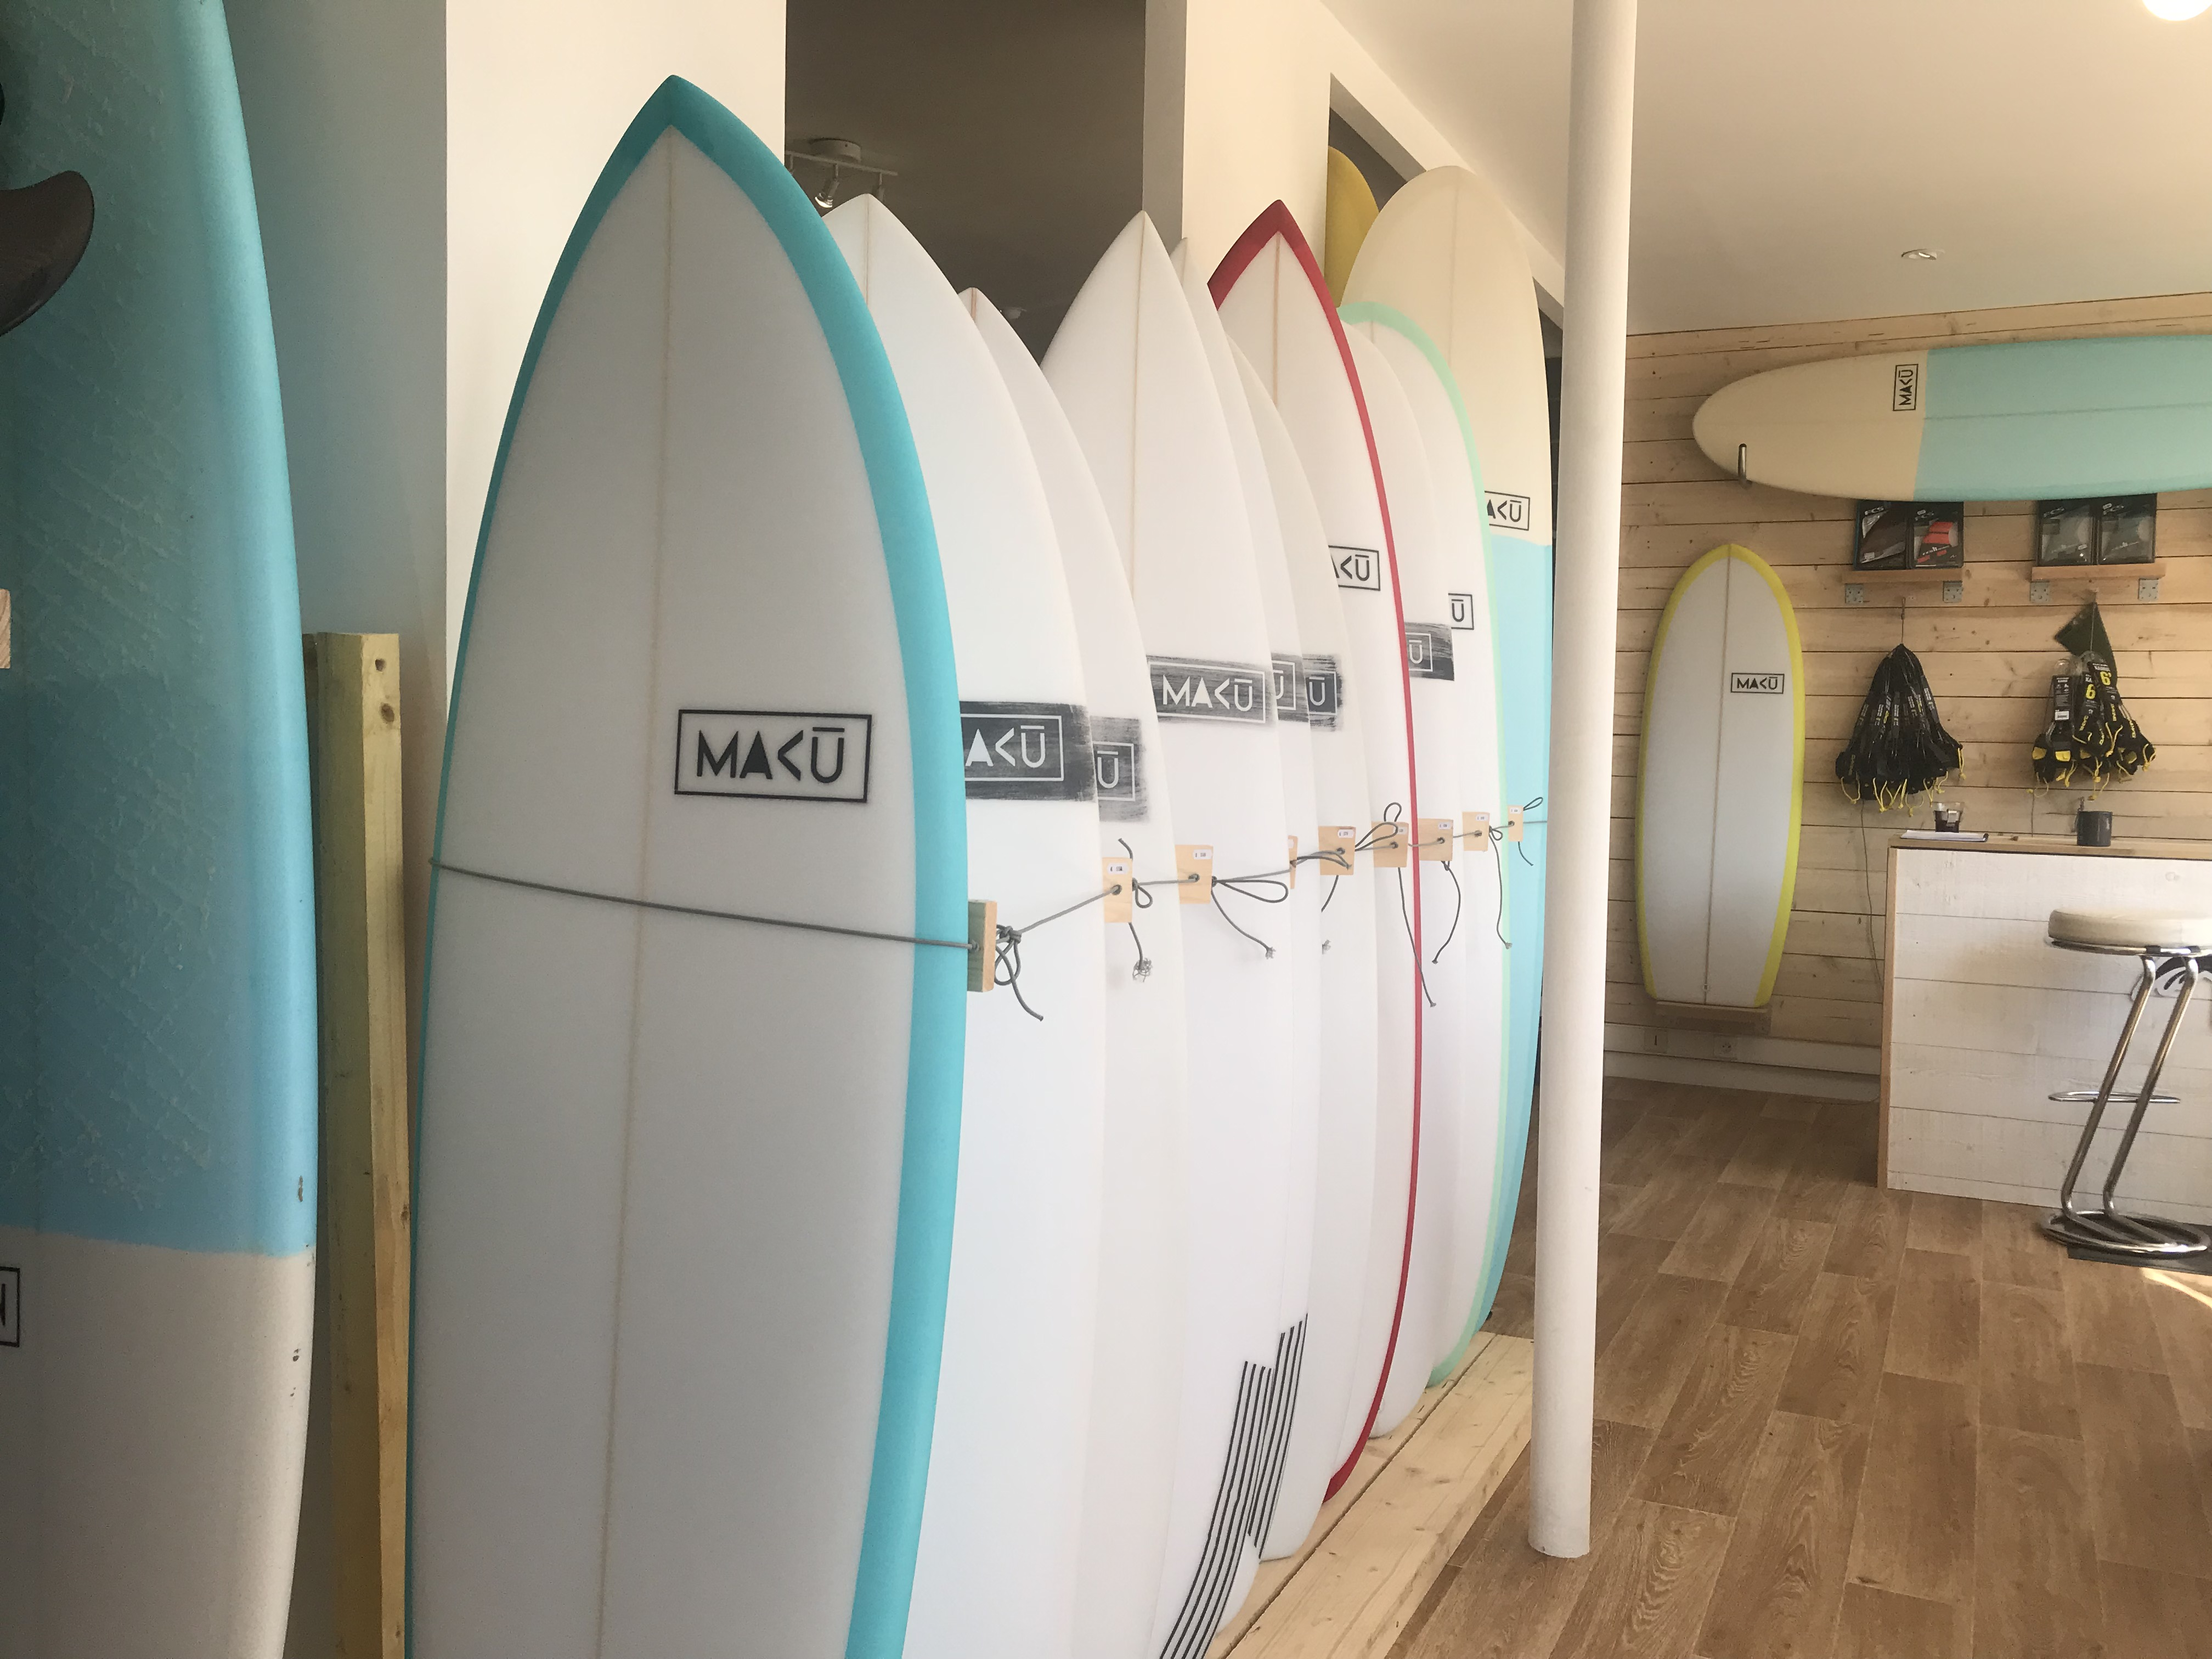 maku surf shop